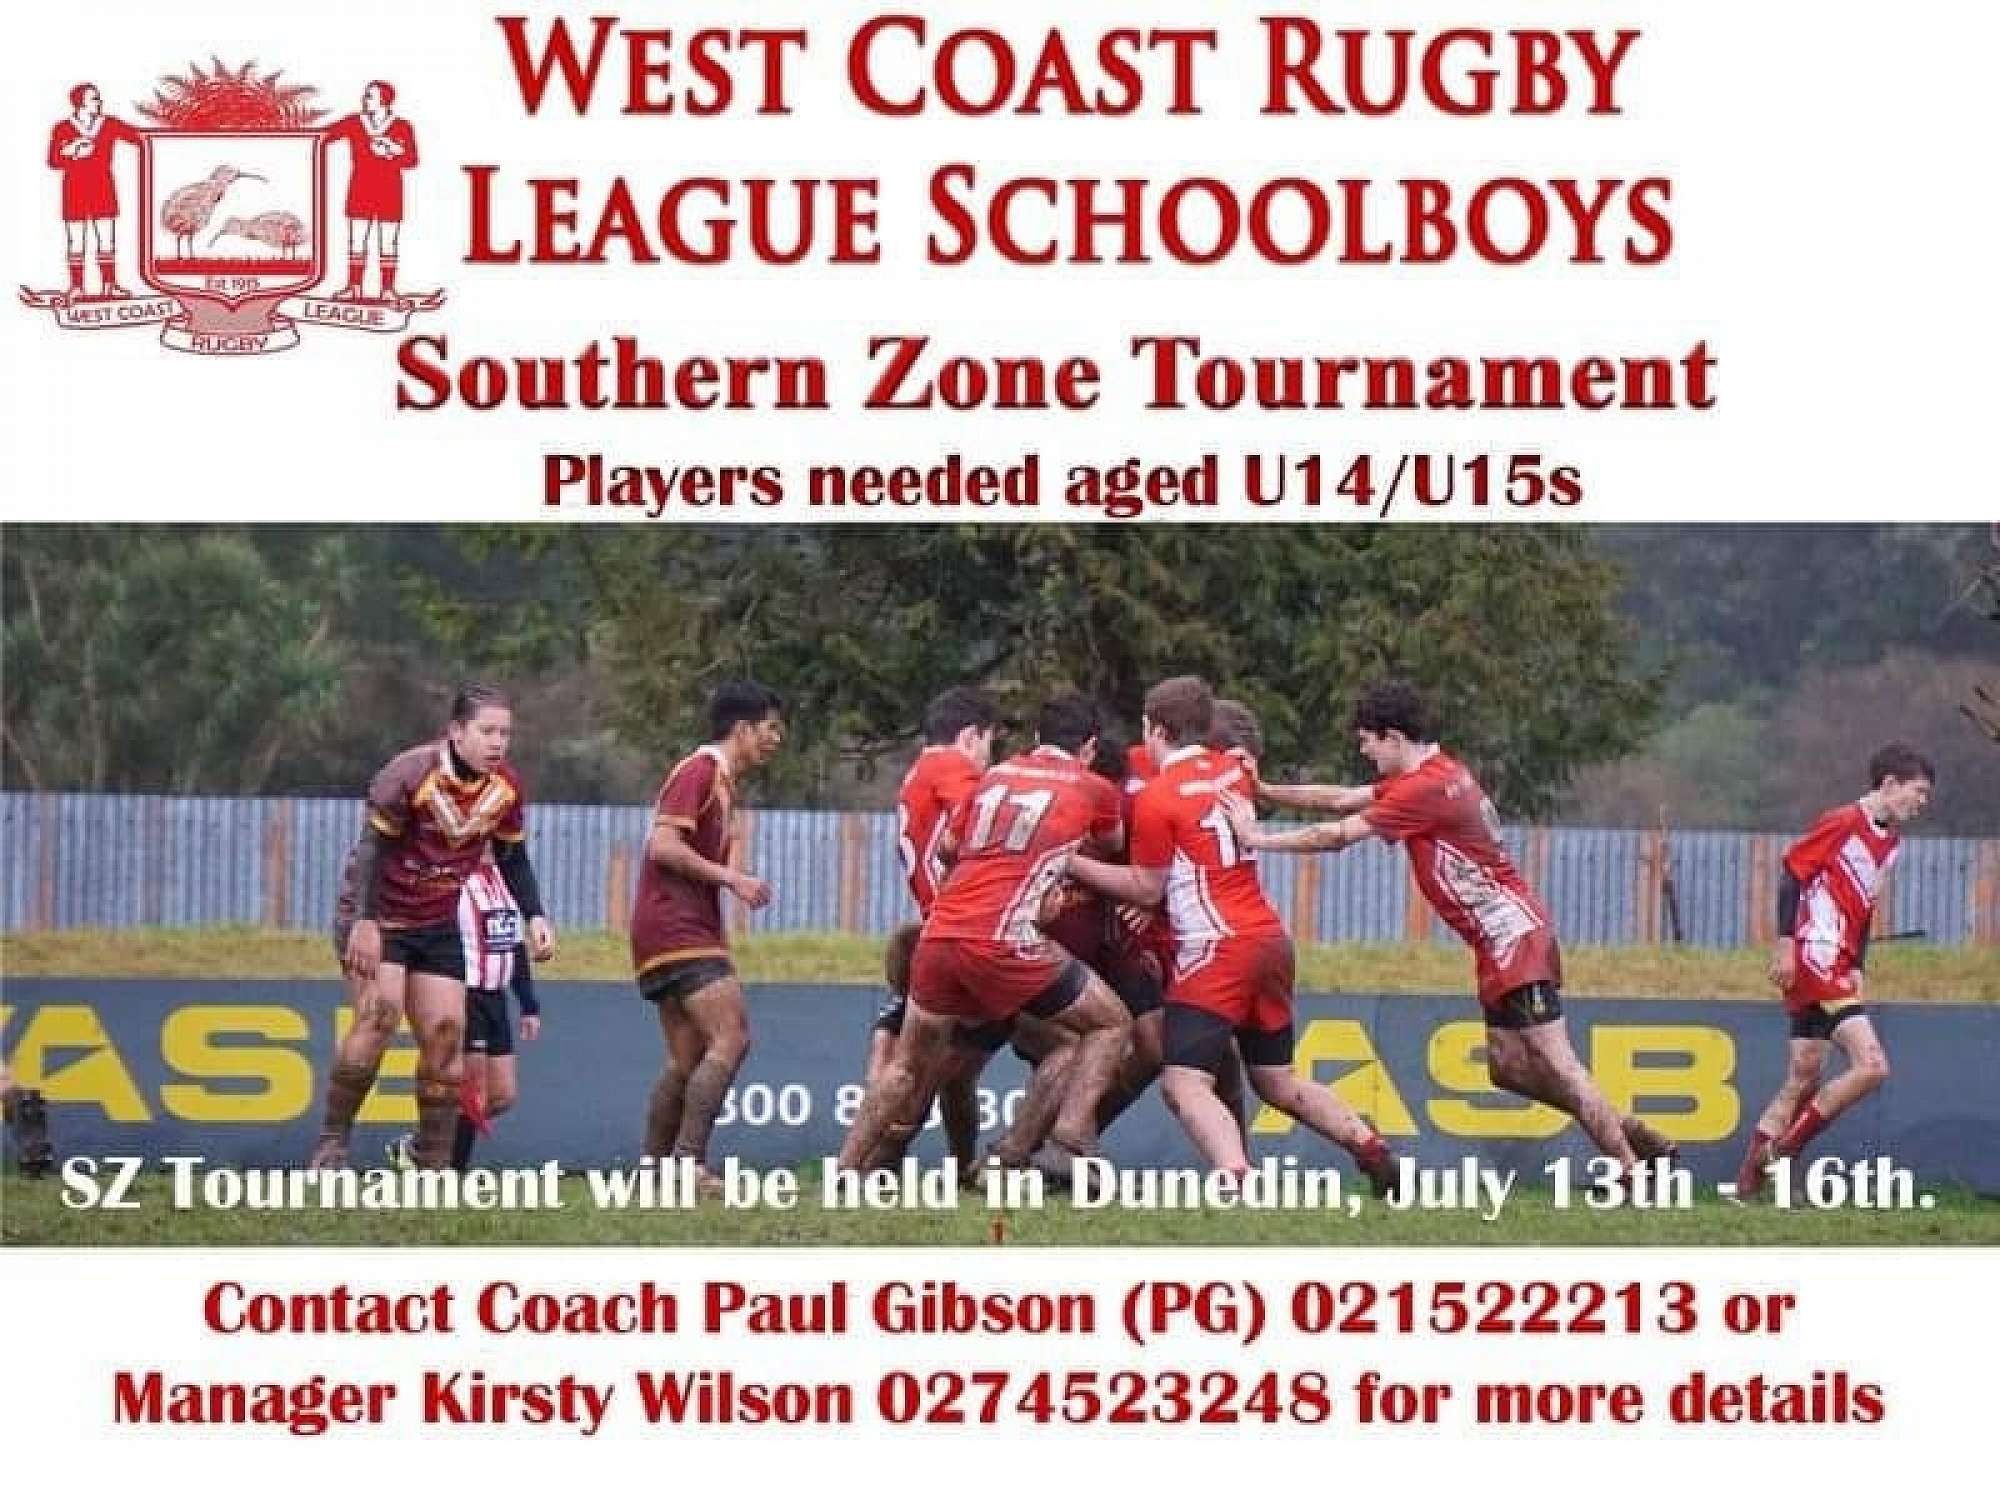 This tournament will host all South Island regional teams, NZRL staff, NRL scouts, South Island coaches etc! The West Coast under 15s has had a number of injuries, so they have a few positions available..... ARE YOU INTERESTED?